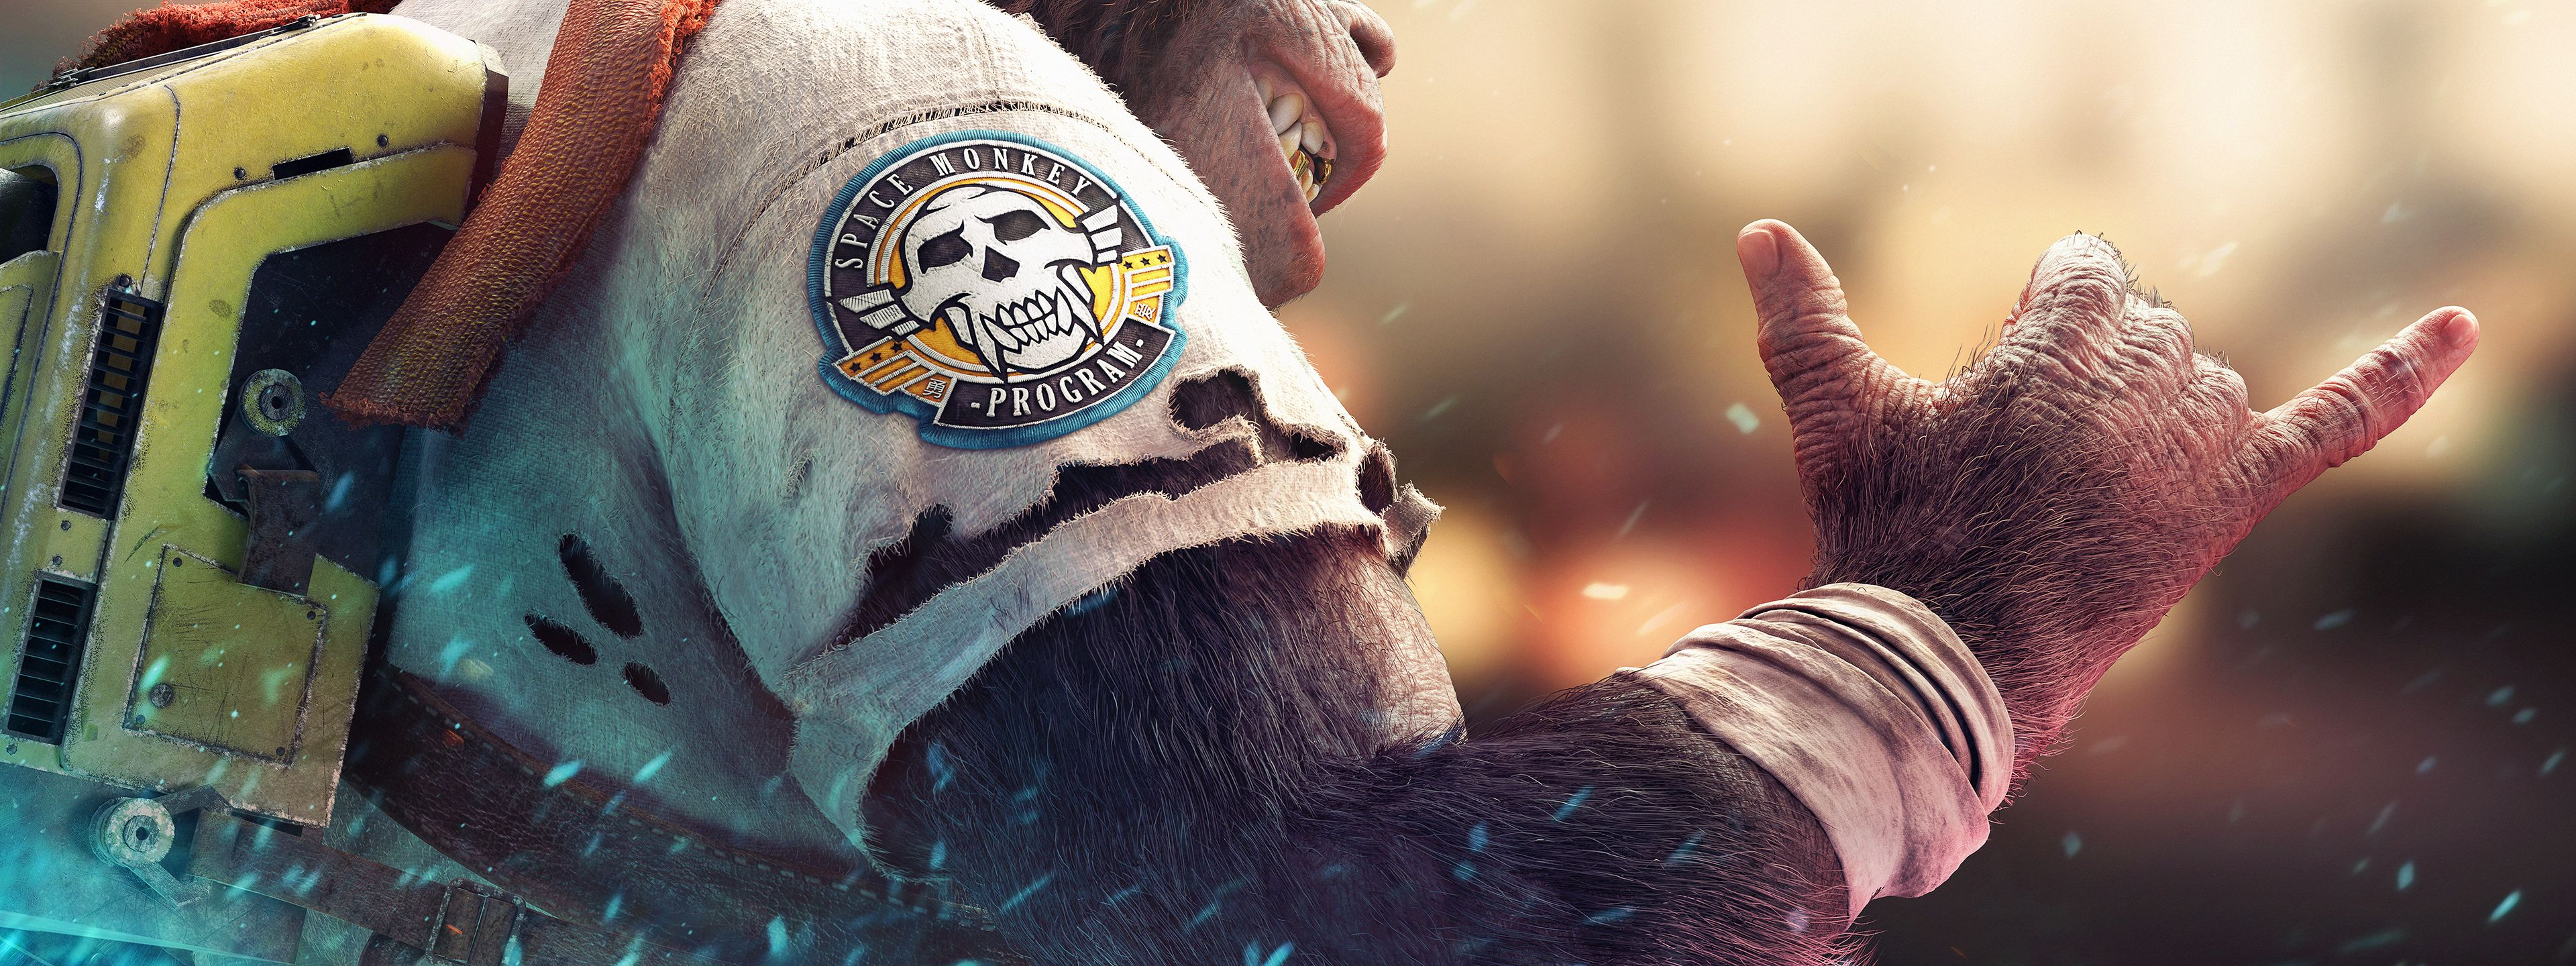 20 Beyond Good Evil 2 Hd Wallpapers Background Images